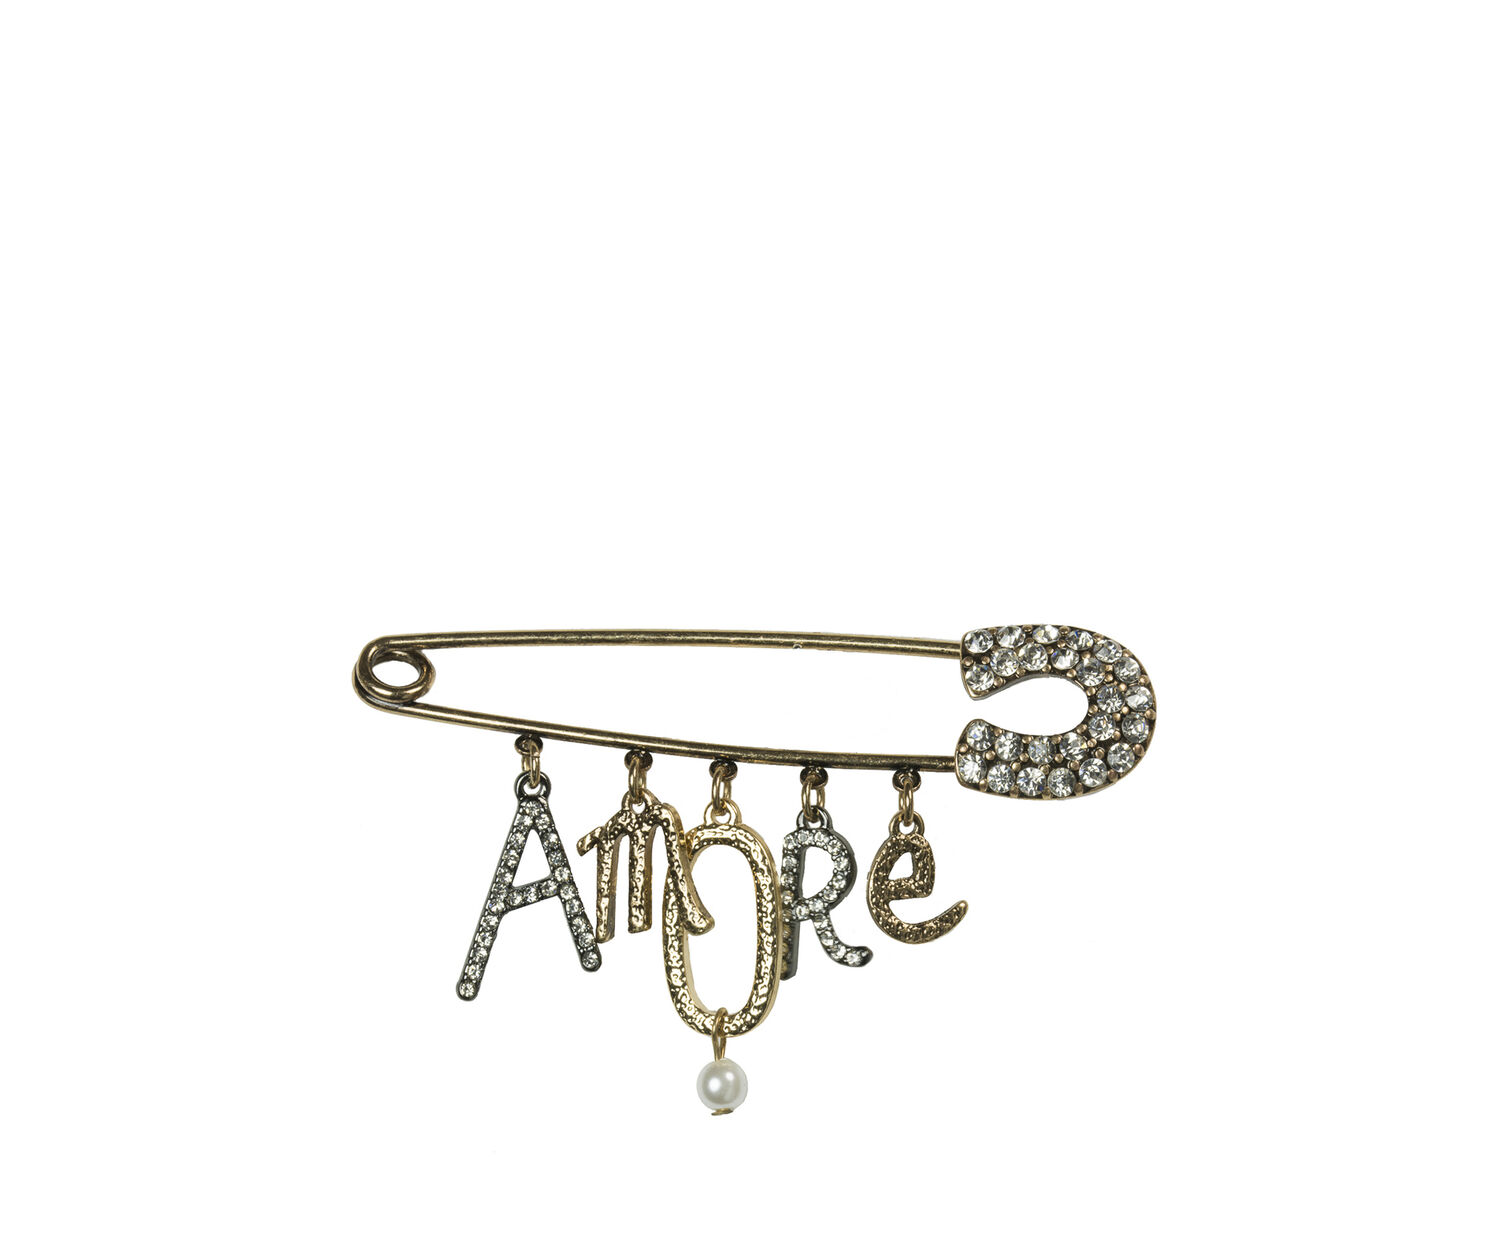 Oasis, AMORE PIN BROOCH Gold 1